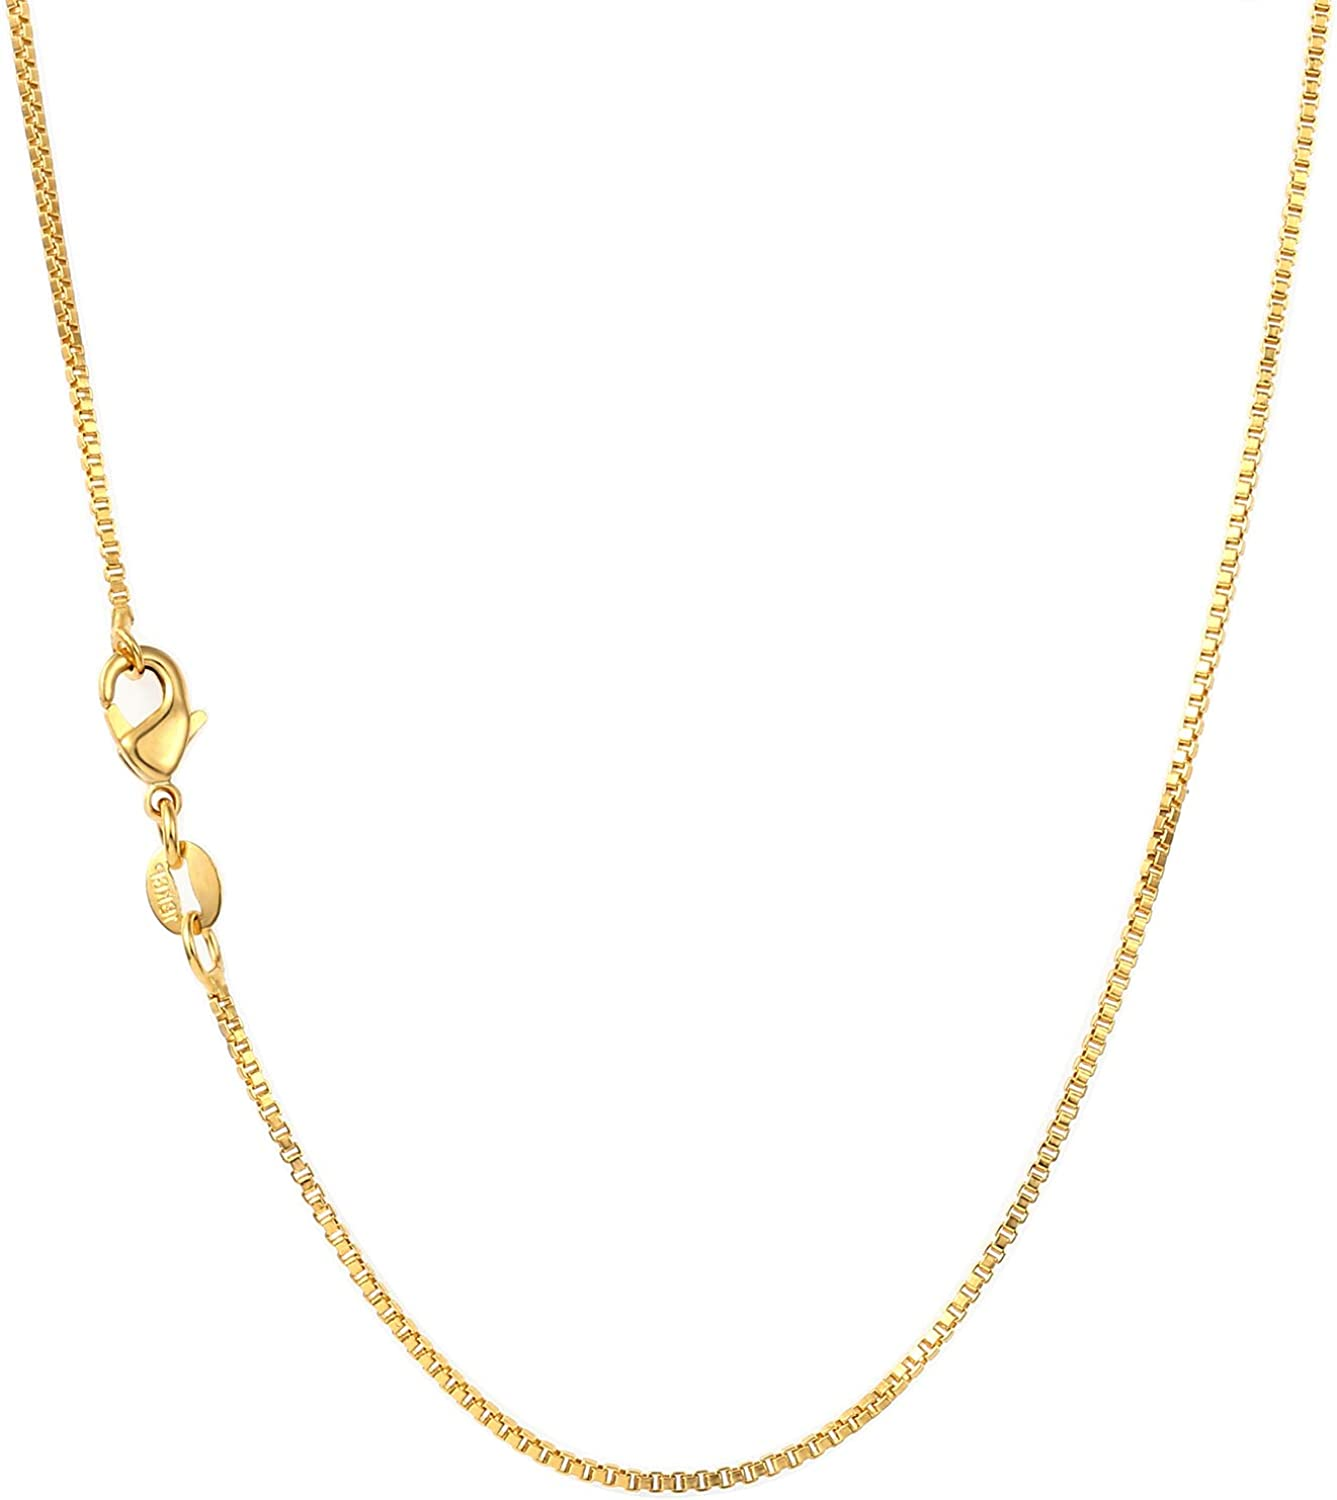 18k Gold Box Chain Necklace for Women 1mm Thin Box Chain Necklace Gold Simple Gold Necklace for Girls 18.2